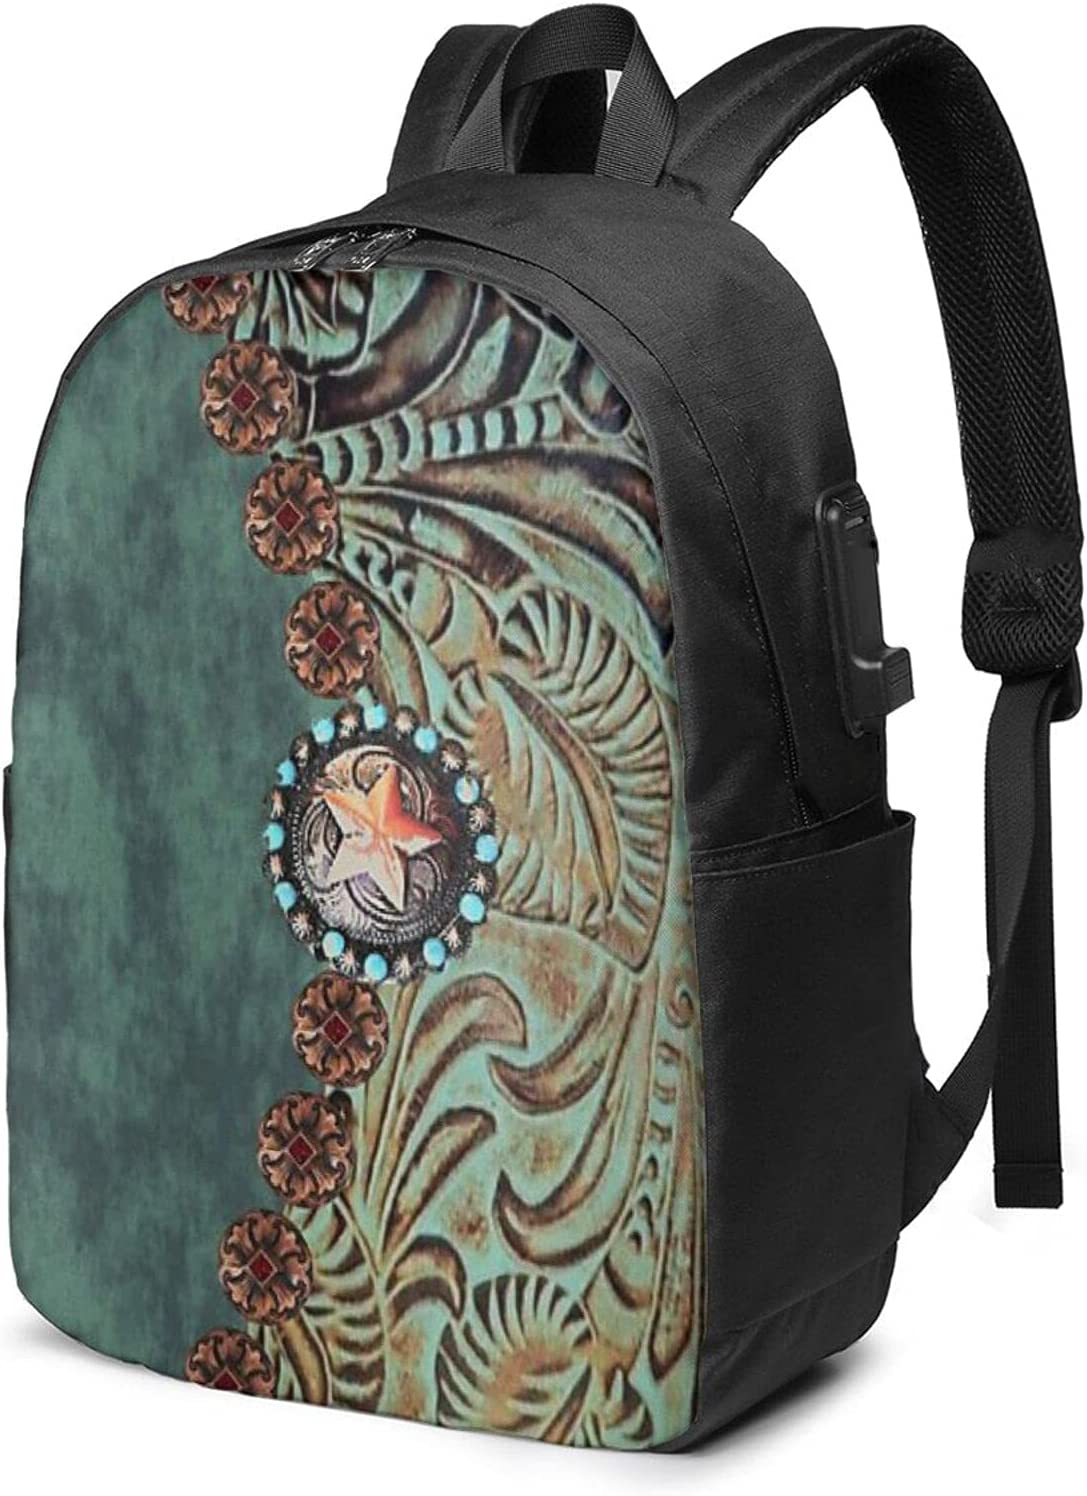 Tooled Leather Country Western Cheap SALE Start Travel Laptop Wate Backpack unisex Purse